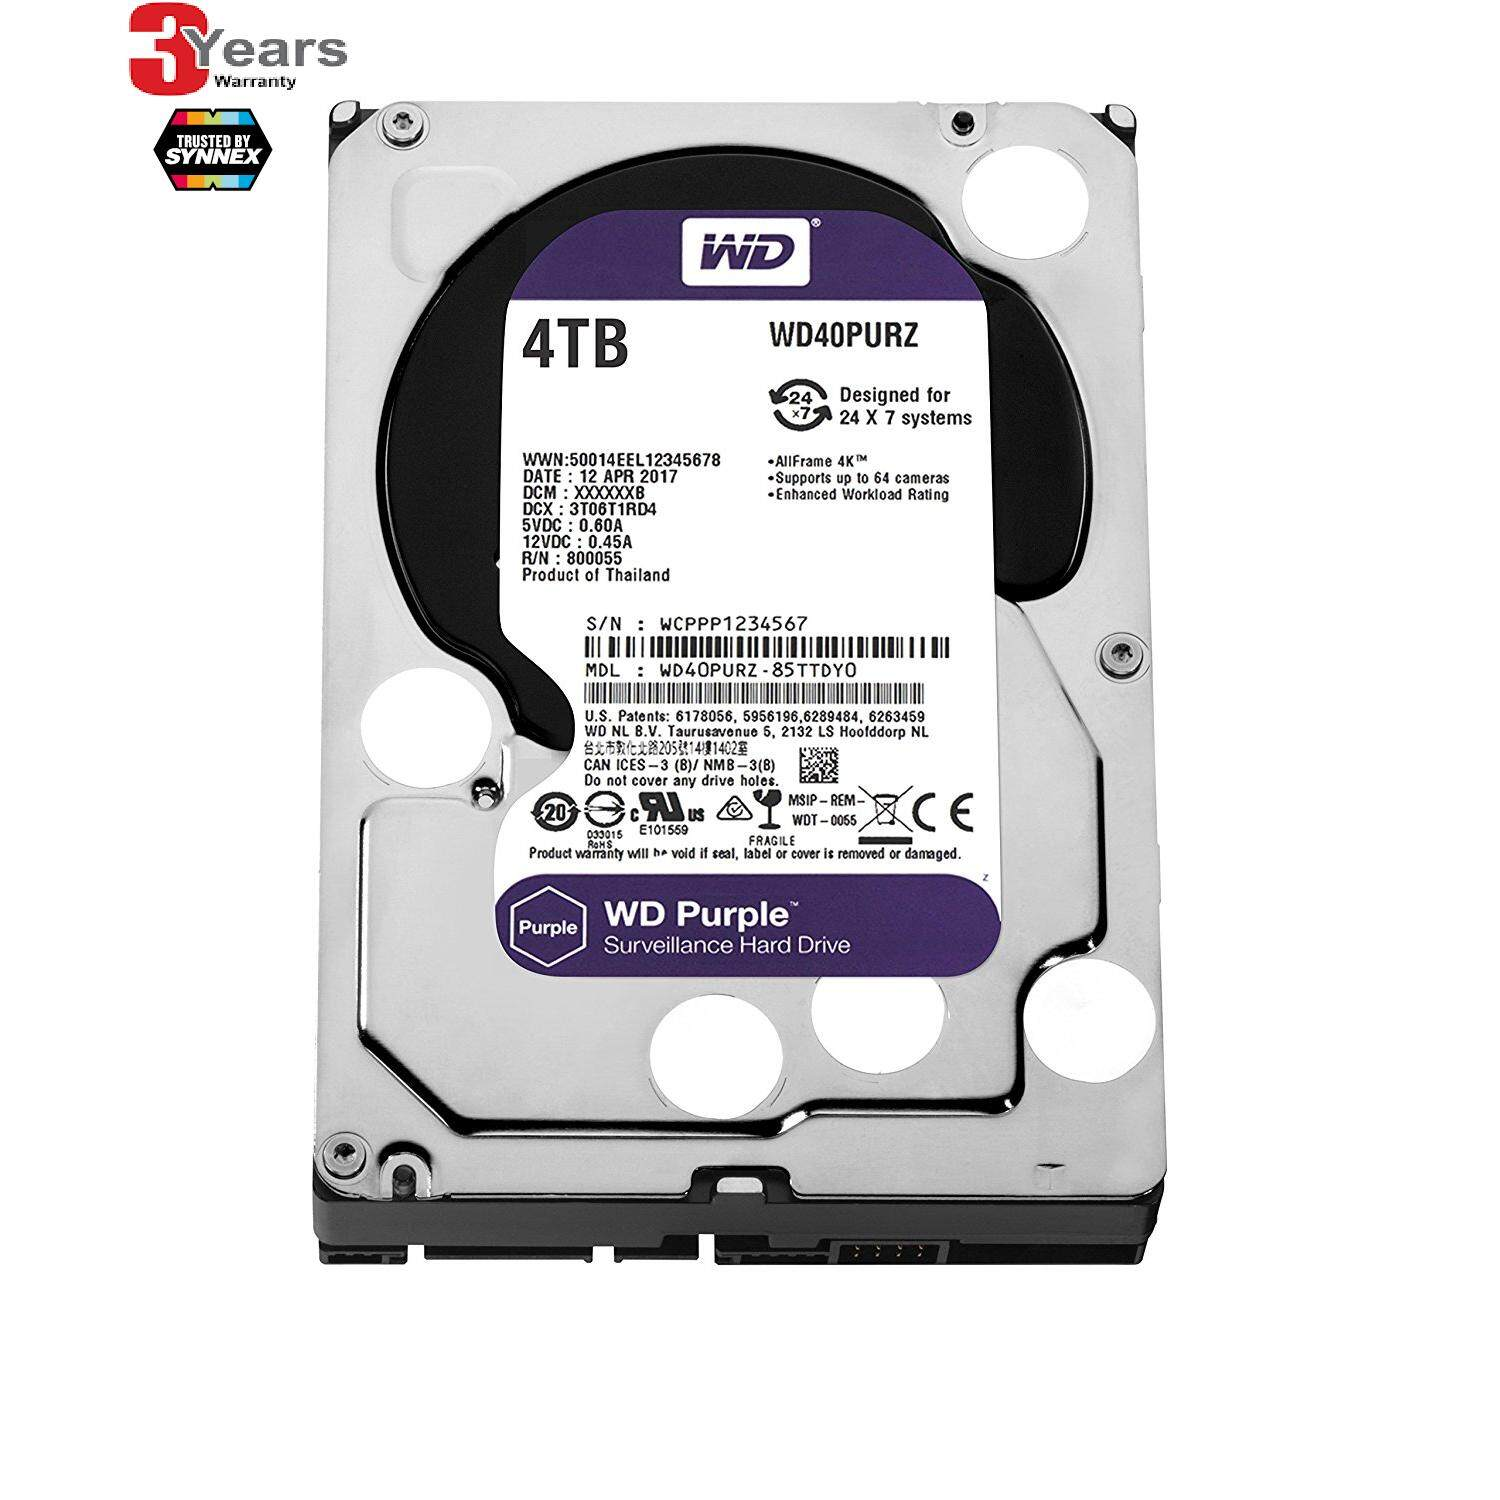 ส่วนลด 4 Tb Hdd ฮาร์ดดิส Wd Sata 3 Purple Wd40Purz 3 Years Waranty By Synnex Wd